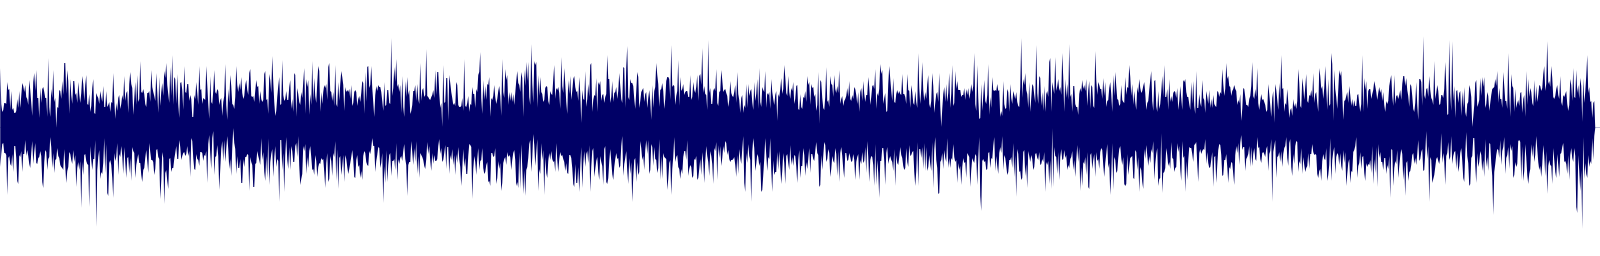 waveform of track #96087